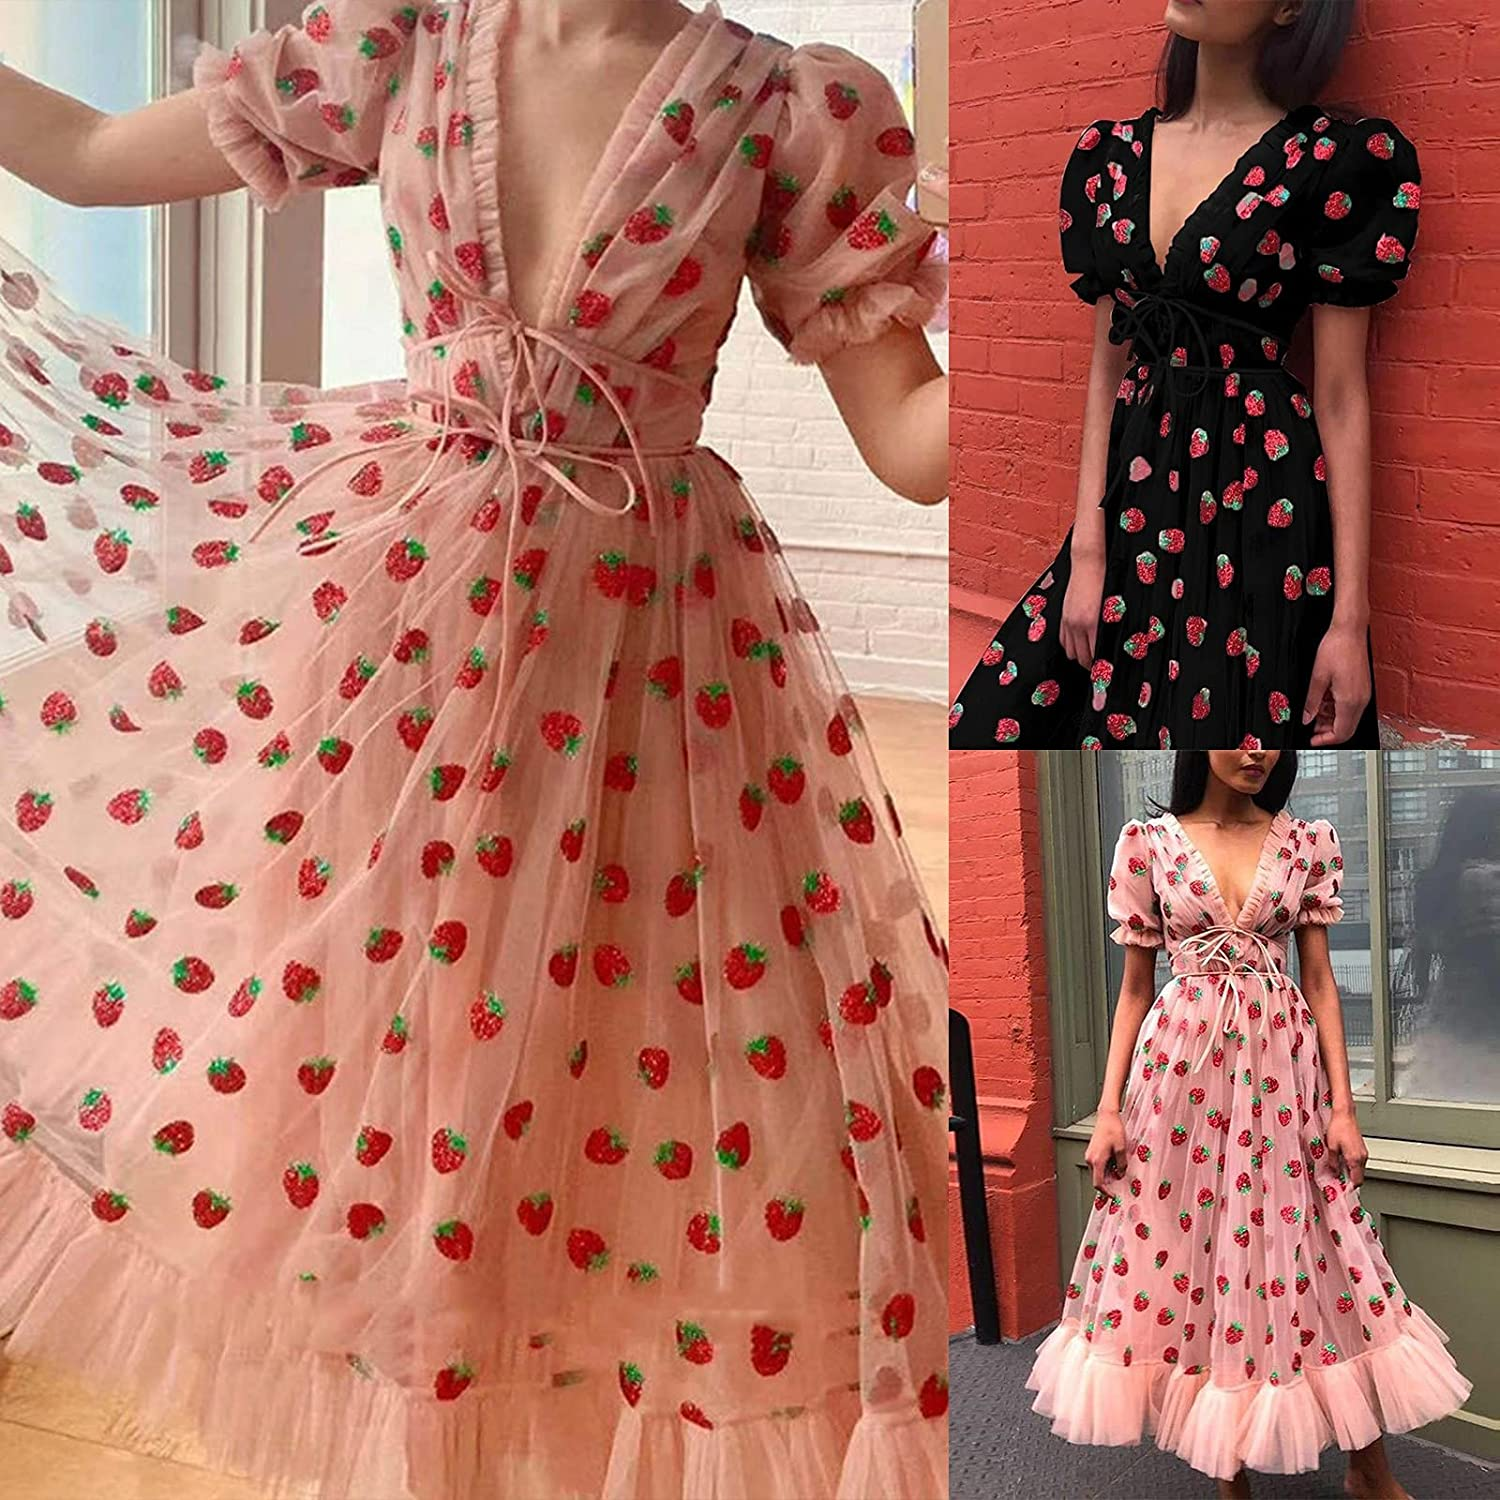 Basysin Strawberry Dress Maxi Plus Size Summer Dresses for Women 2021 Sexy Casual Sundress for Wedding Guest